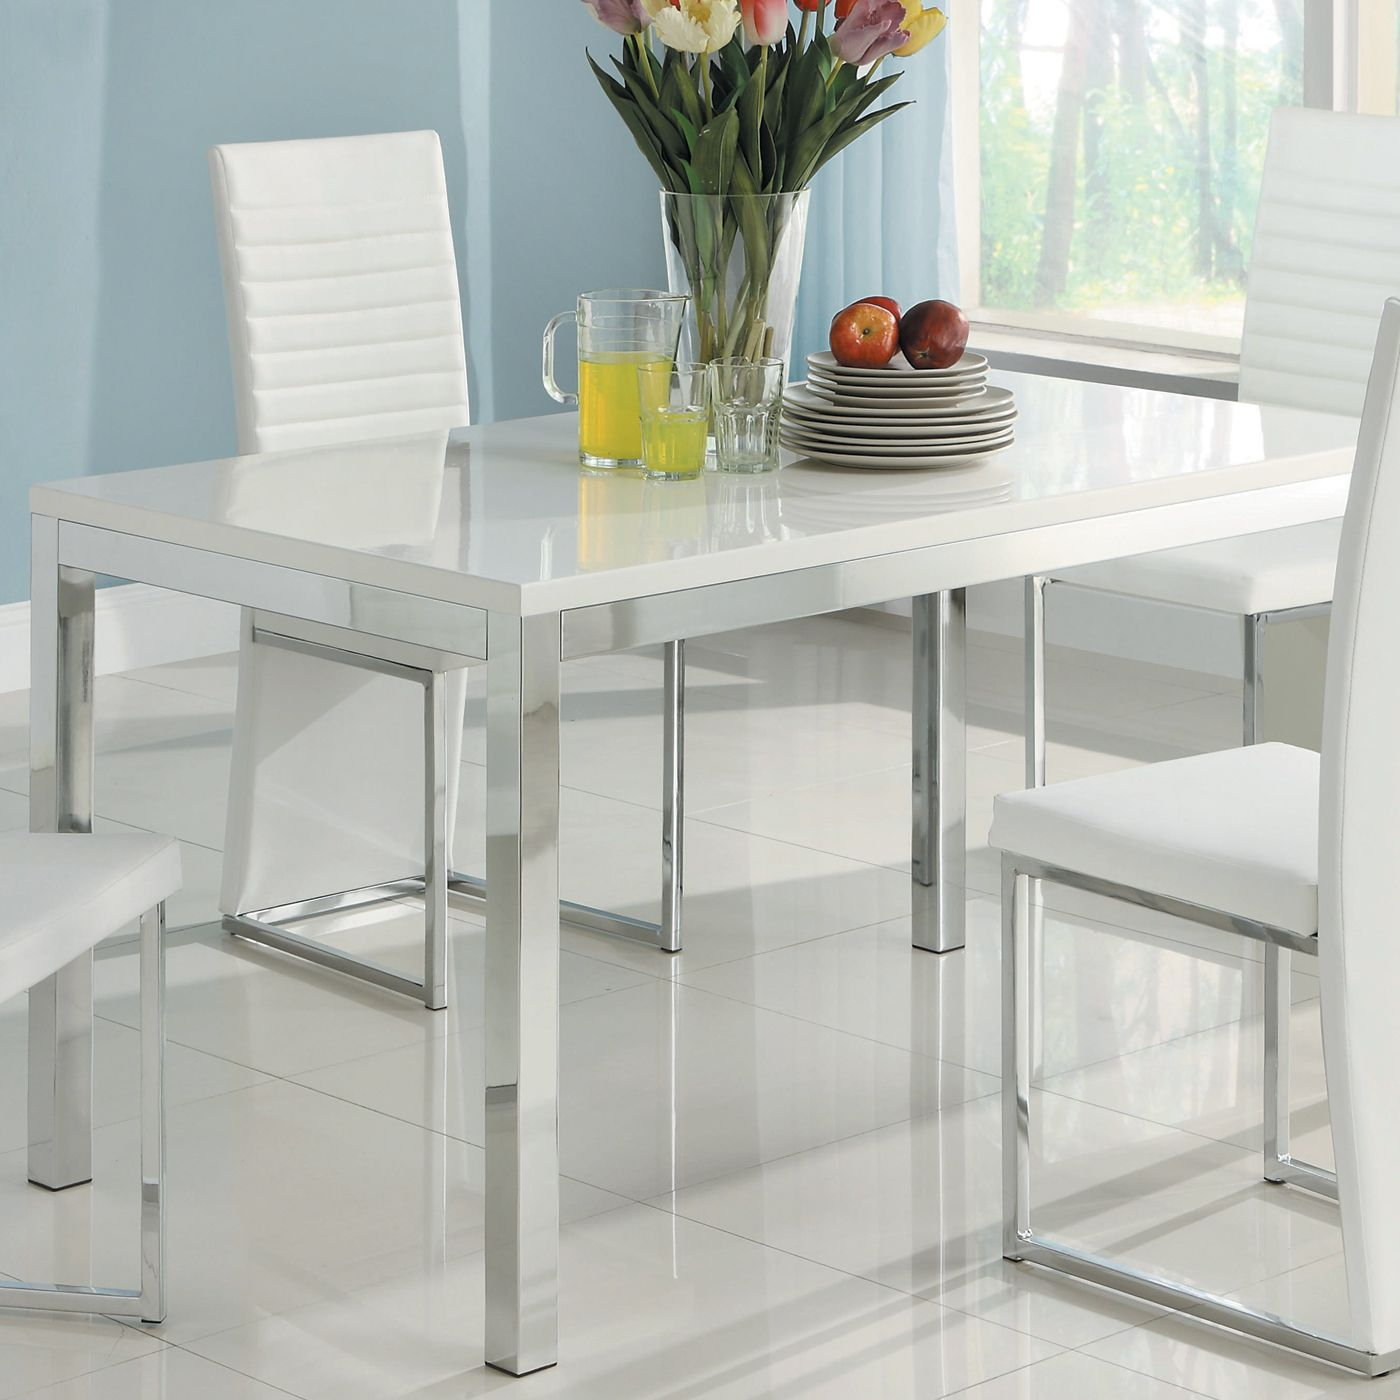 Homelegance 2447 Clarice Dining Table At Atg Stores 29